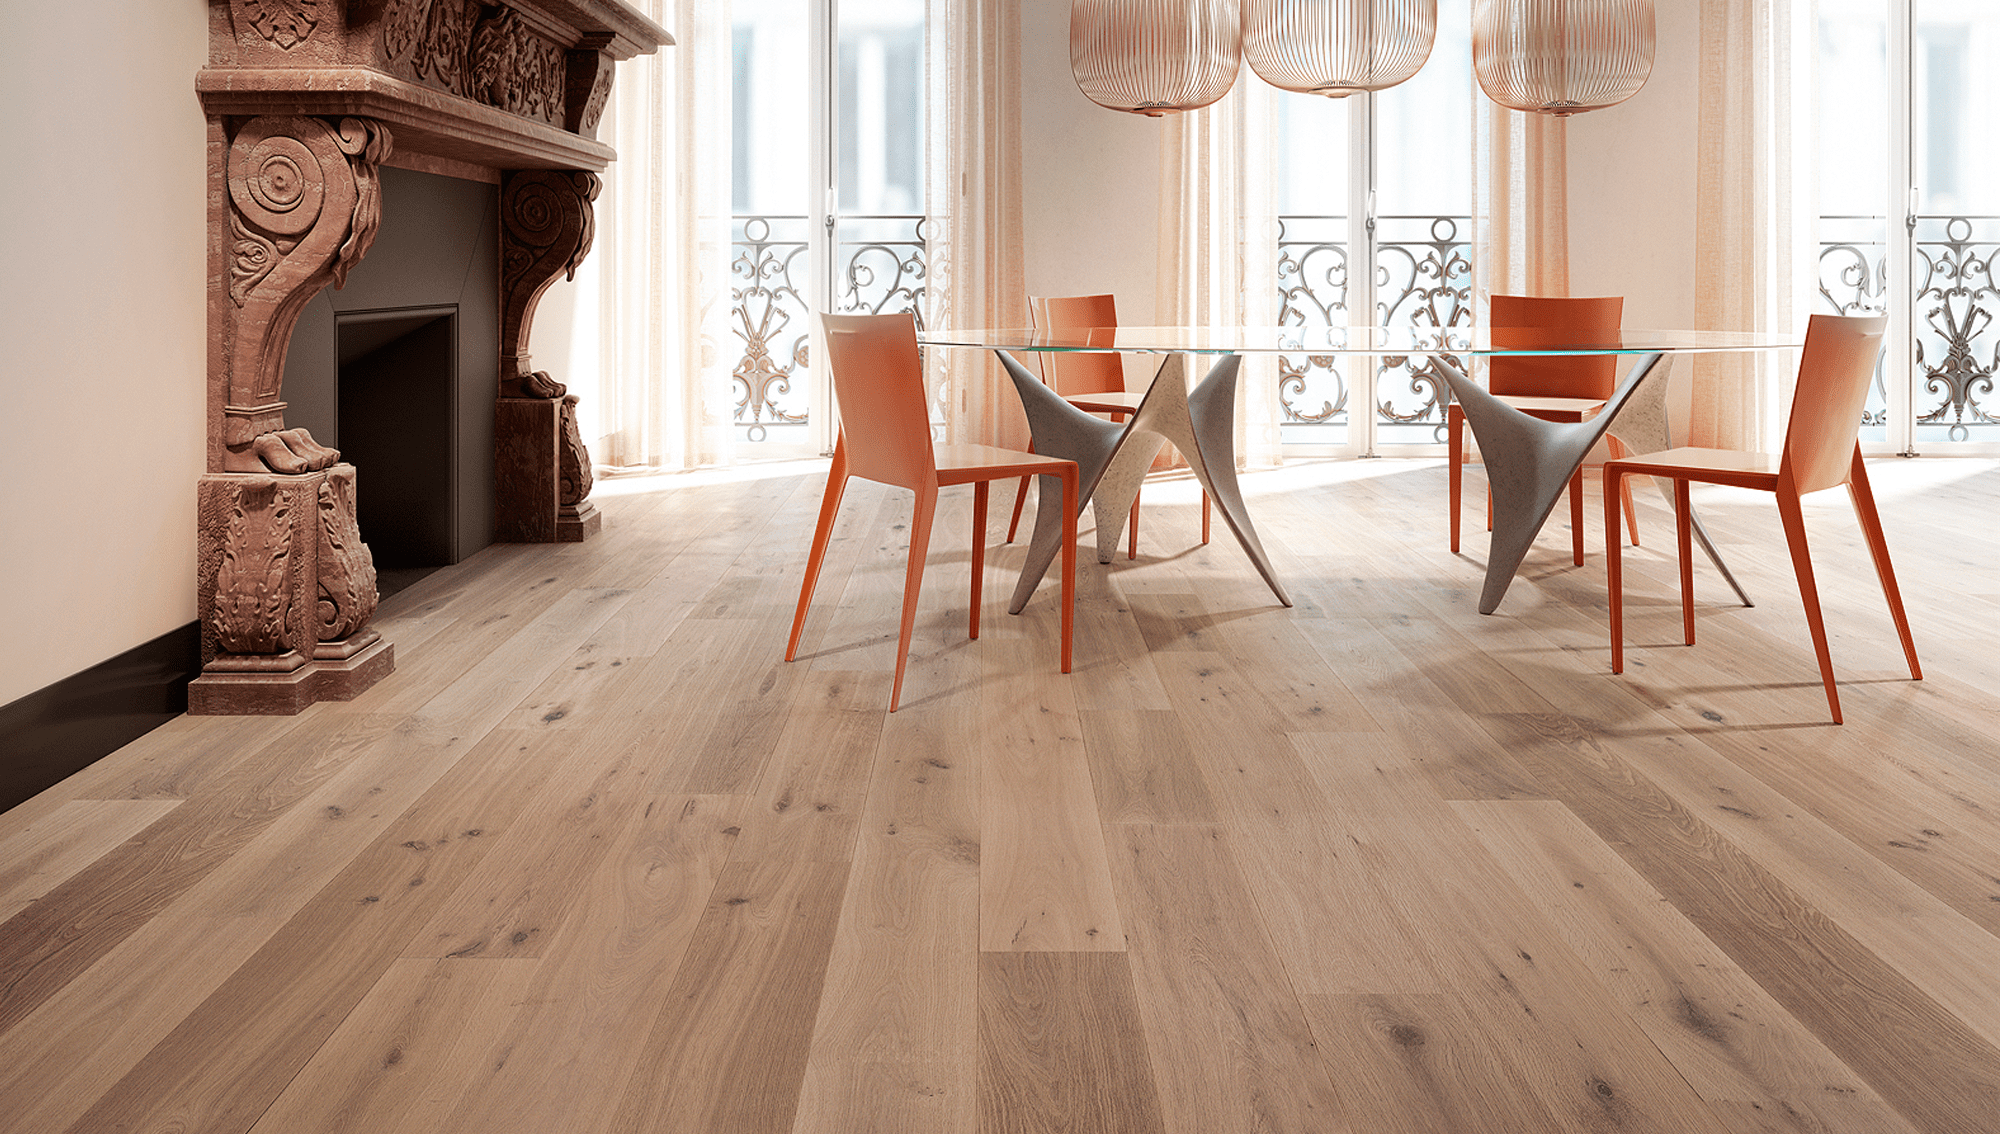 Hardwood Flooring From Canadian Manufacturer Hardwood Planet